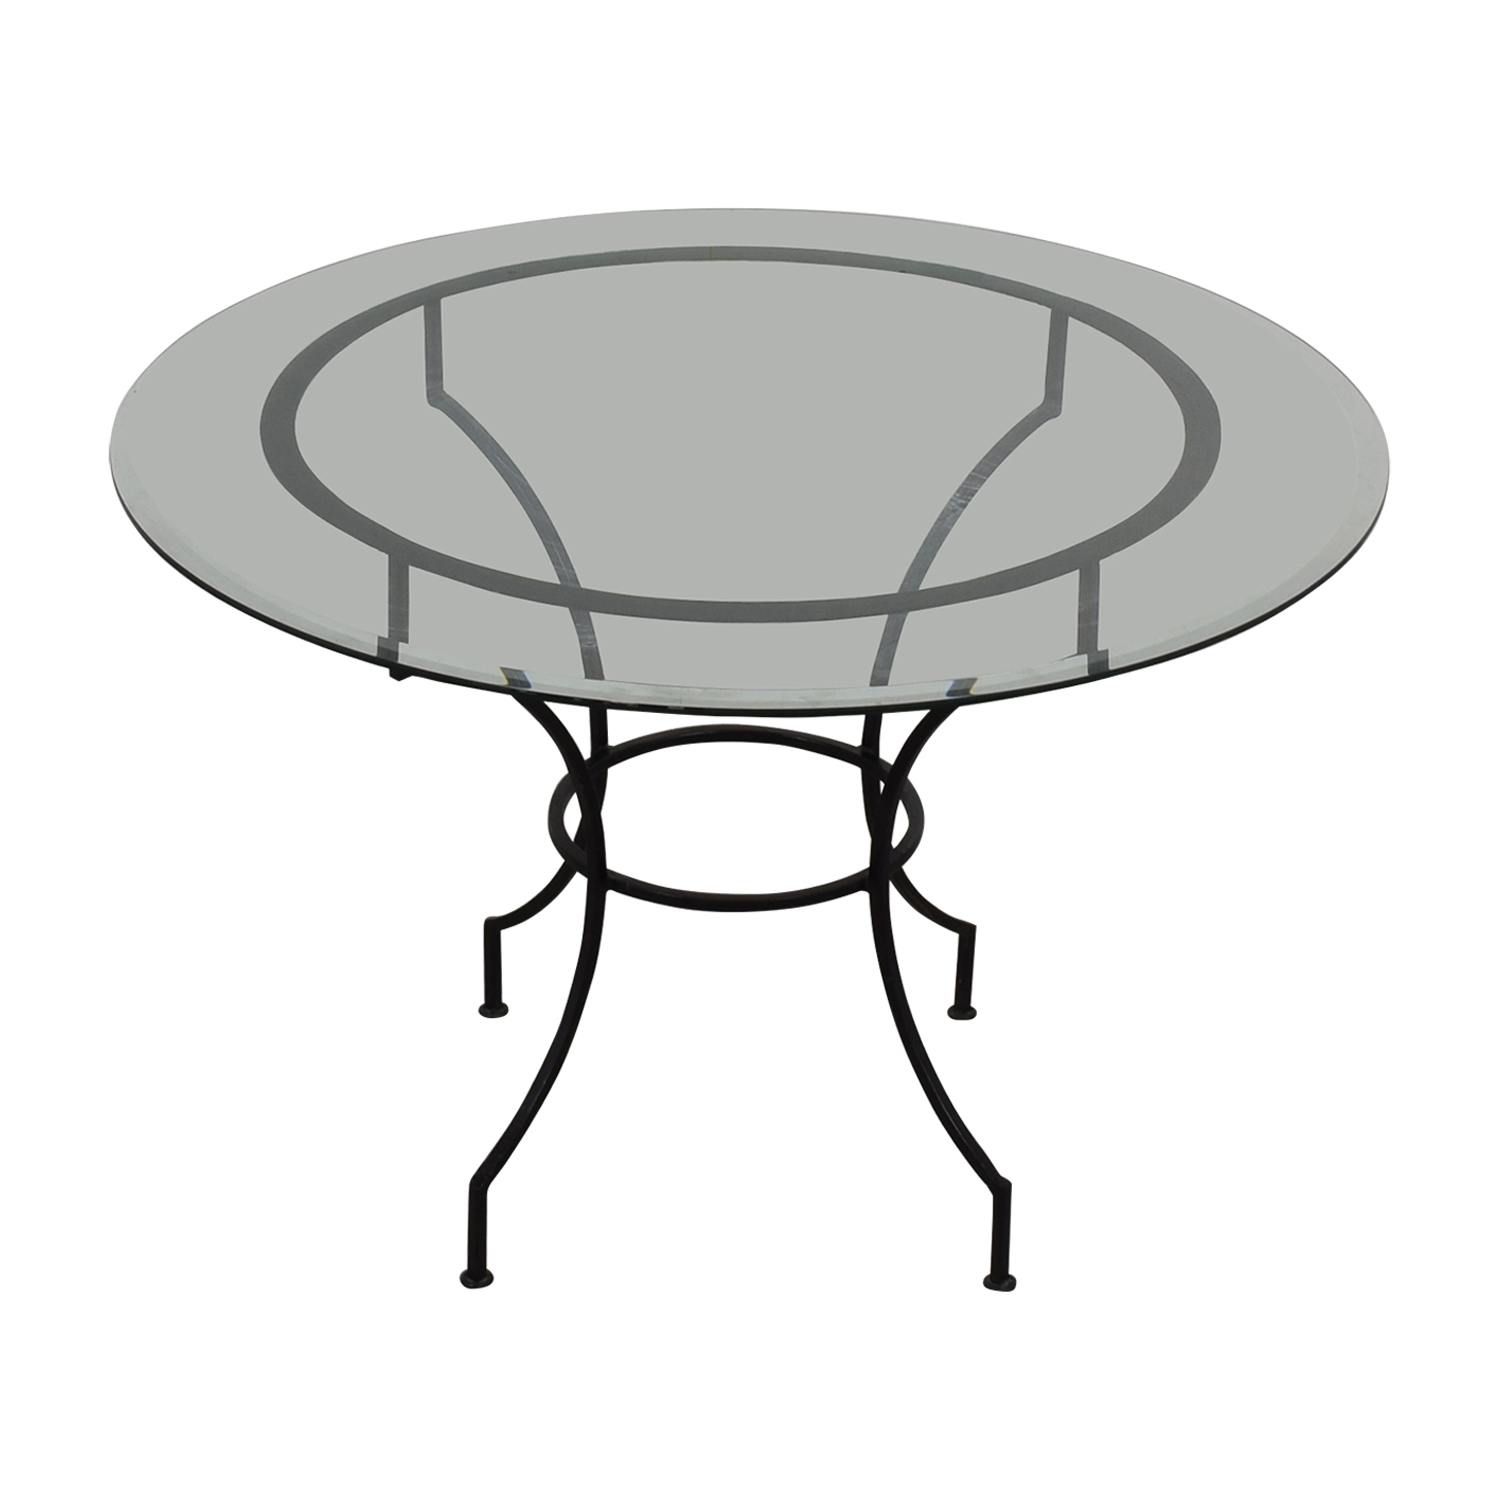 Pottery Barn Round Glass and Iron Base Table / Tables